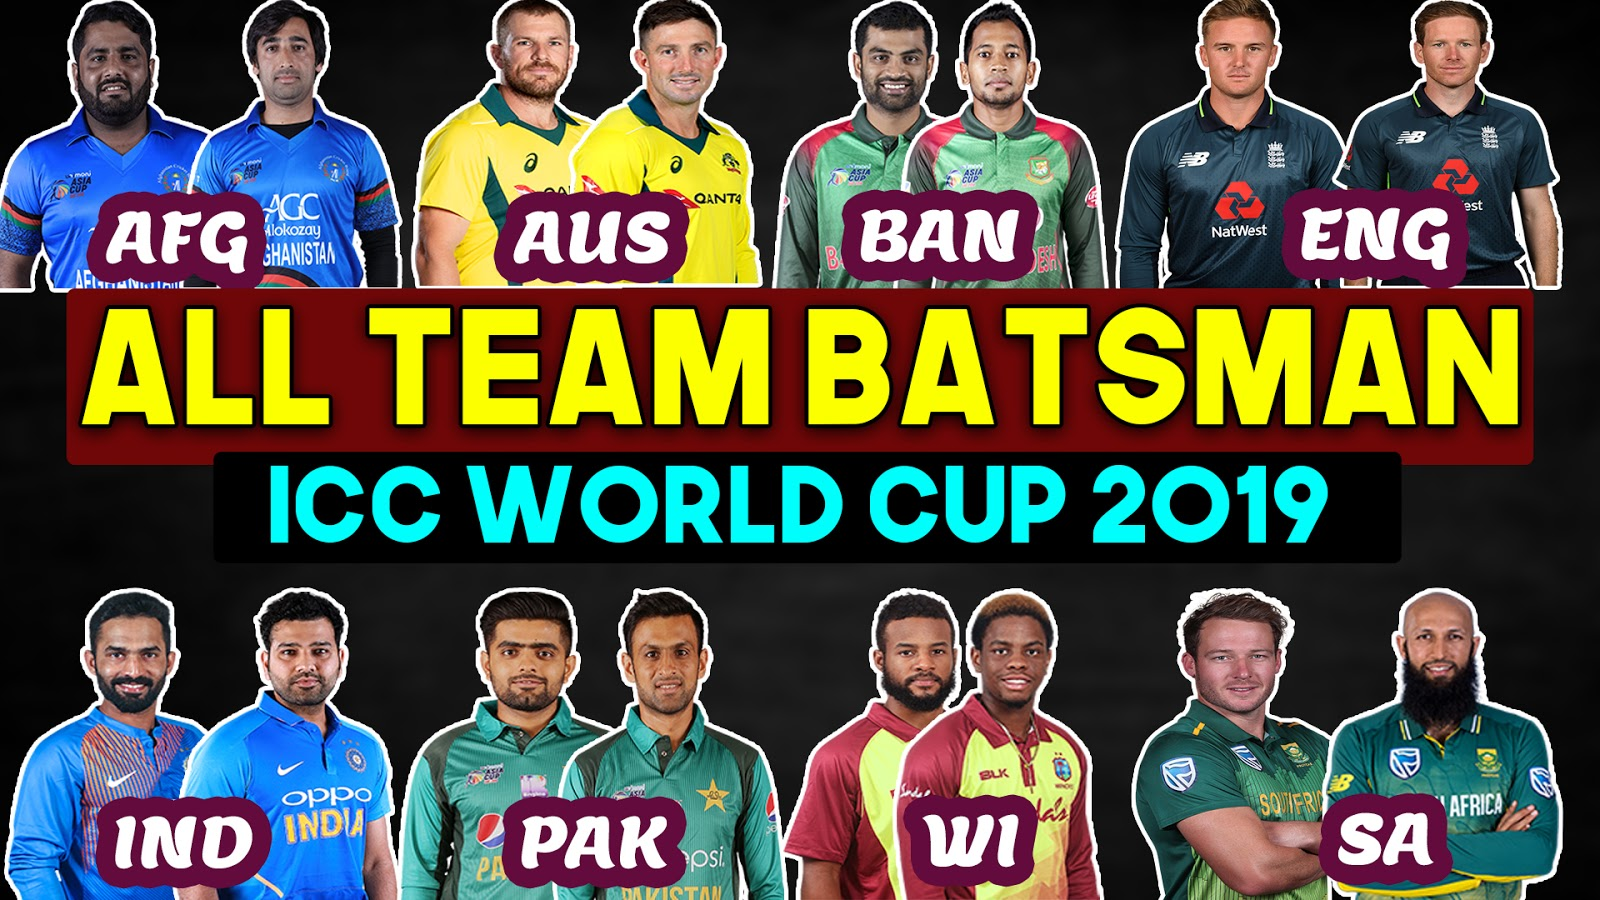 ICC World Cup 2019 All Team Batsman List | ALL Teams Top Batsmen